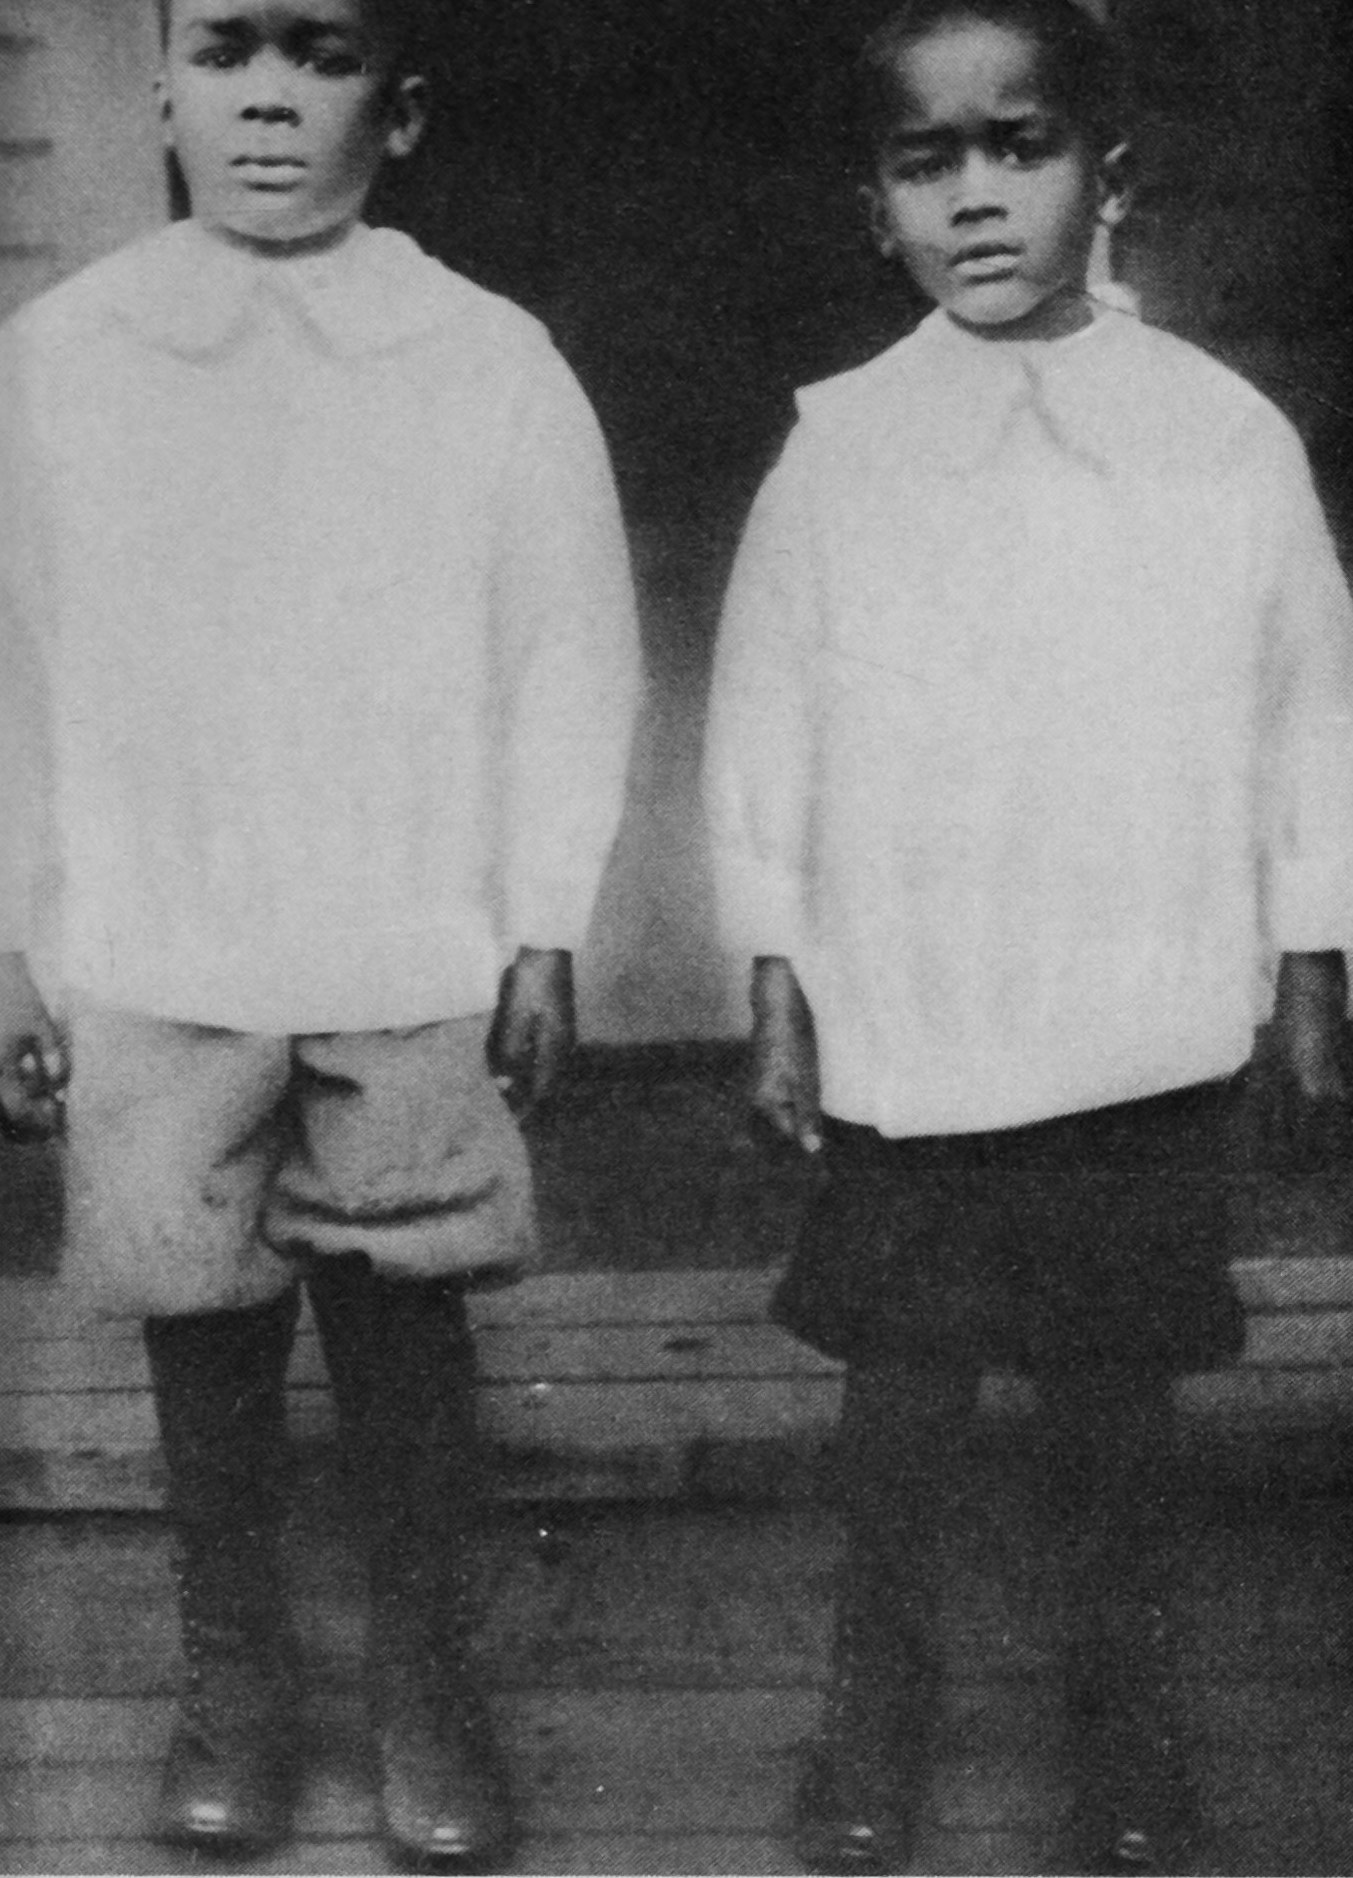 richard-wright-left-and-his-younger-brother-alan-in-1916-when-they-were-living-in-elaine-arkansas